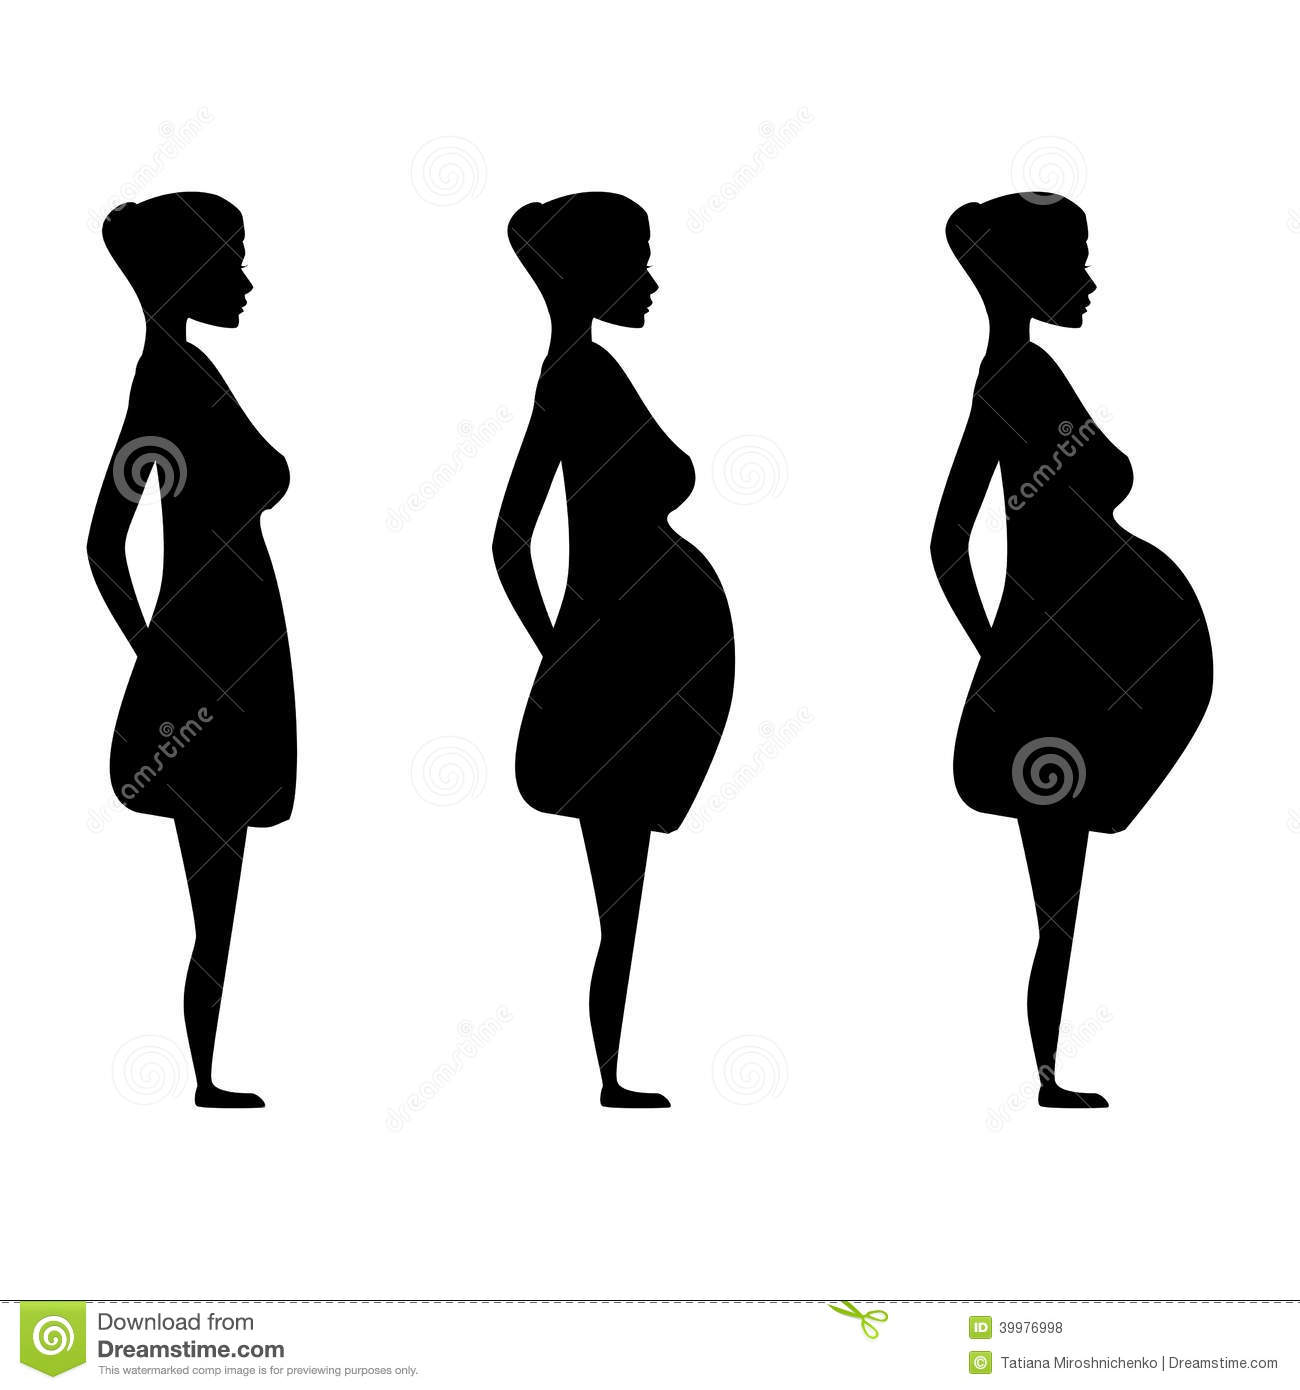 Three Trimesters Of Pregnancy Stock Vector - Image: 42295155